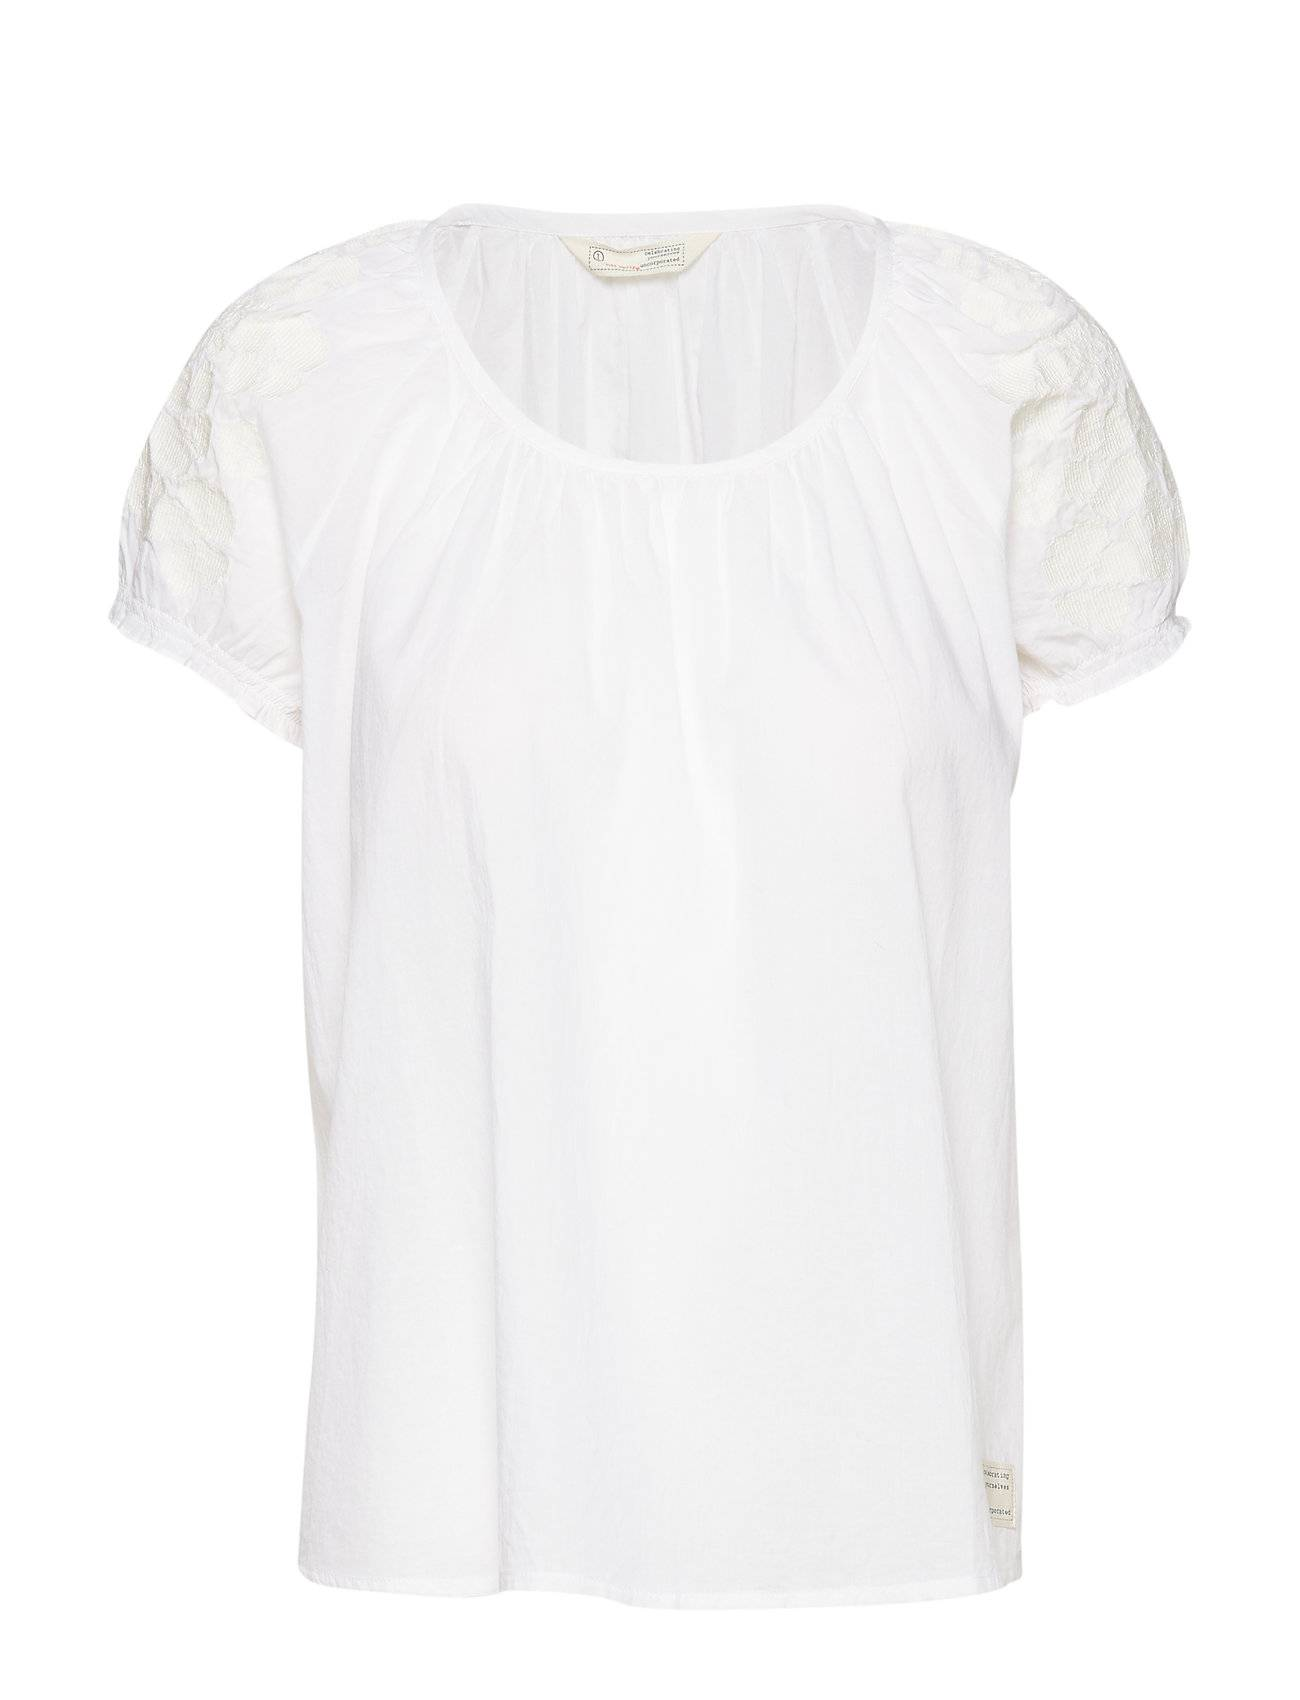 Image of ODD MOLLY Wooo-Hooo Blouse Blouses Short-sleeved Valkoinen ODD MOLLY